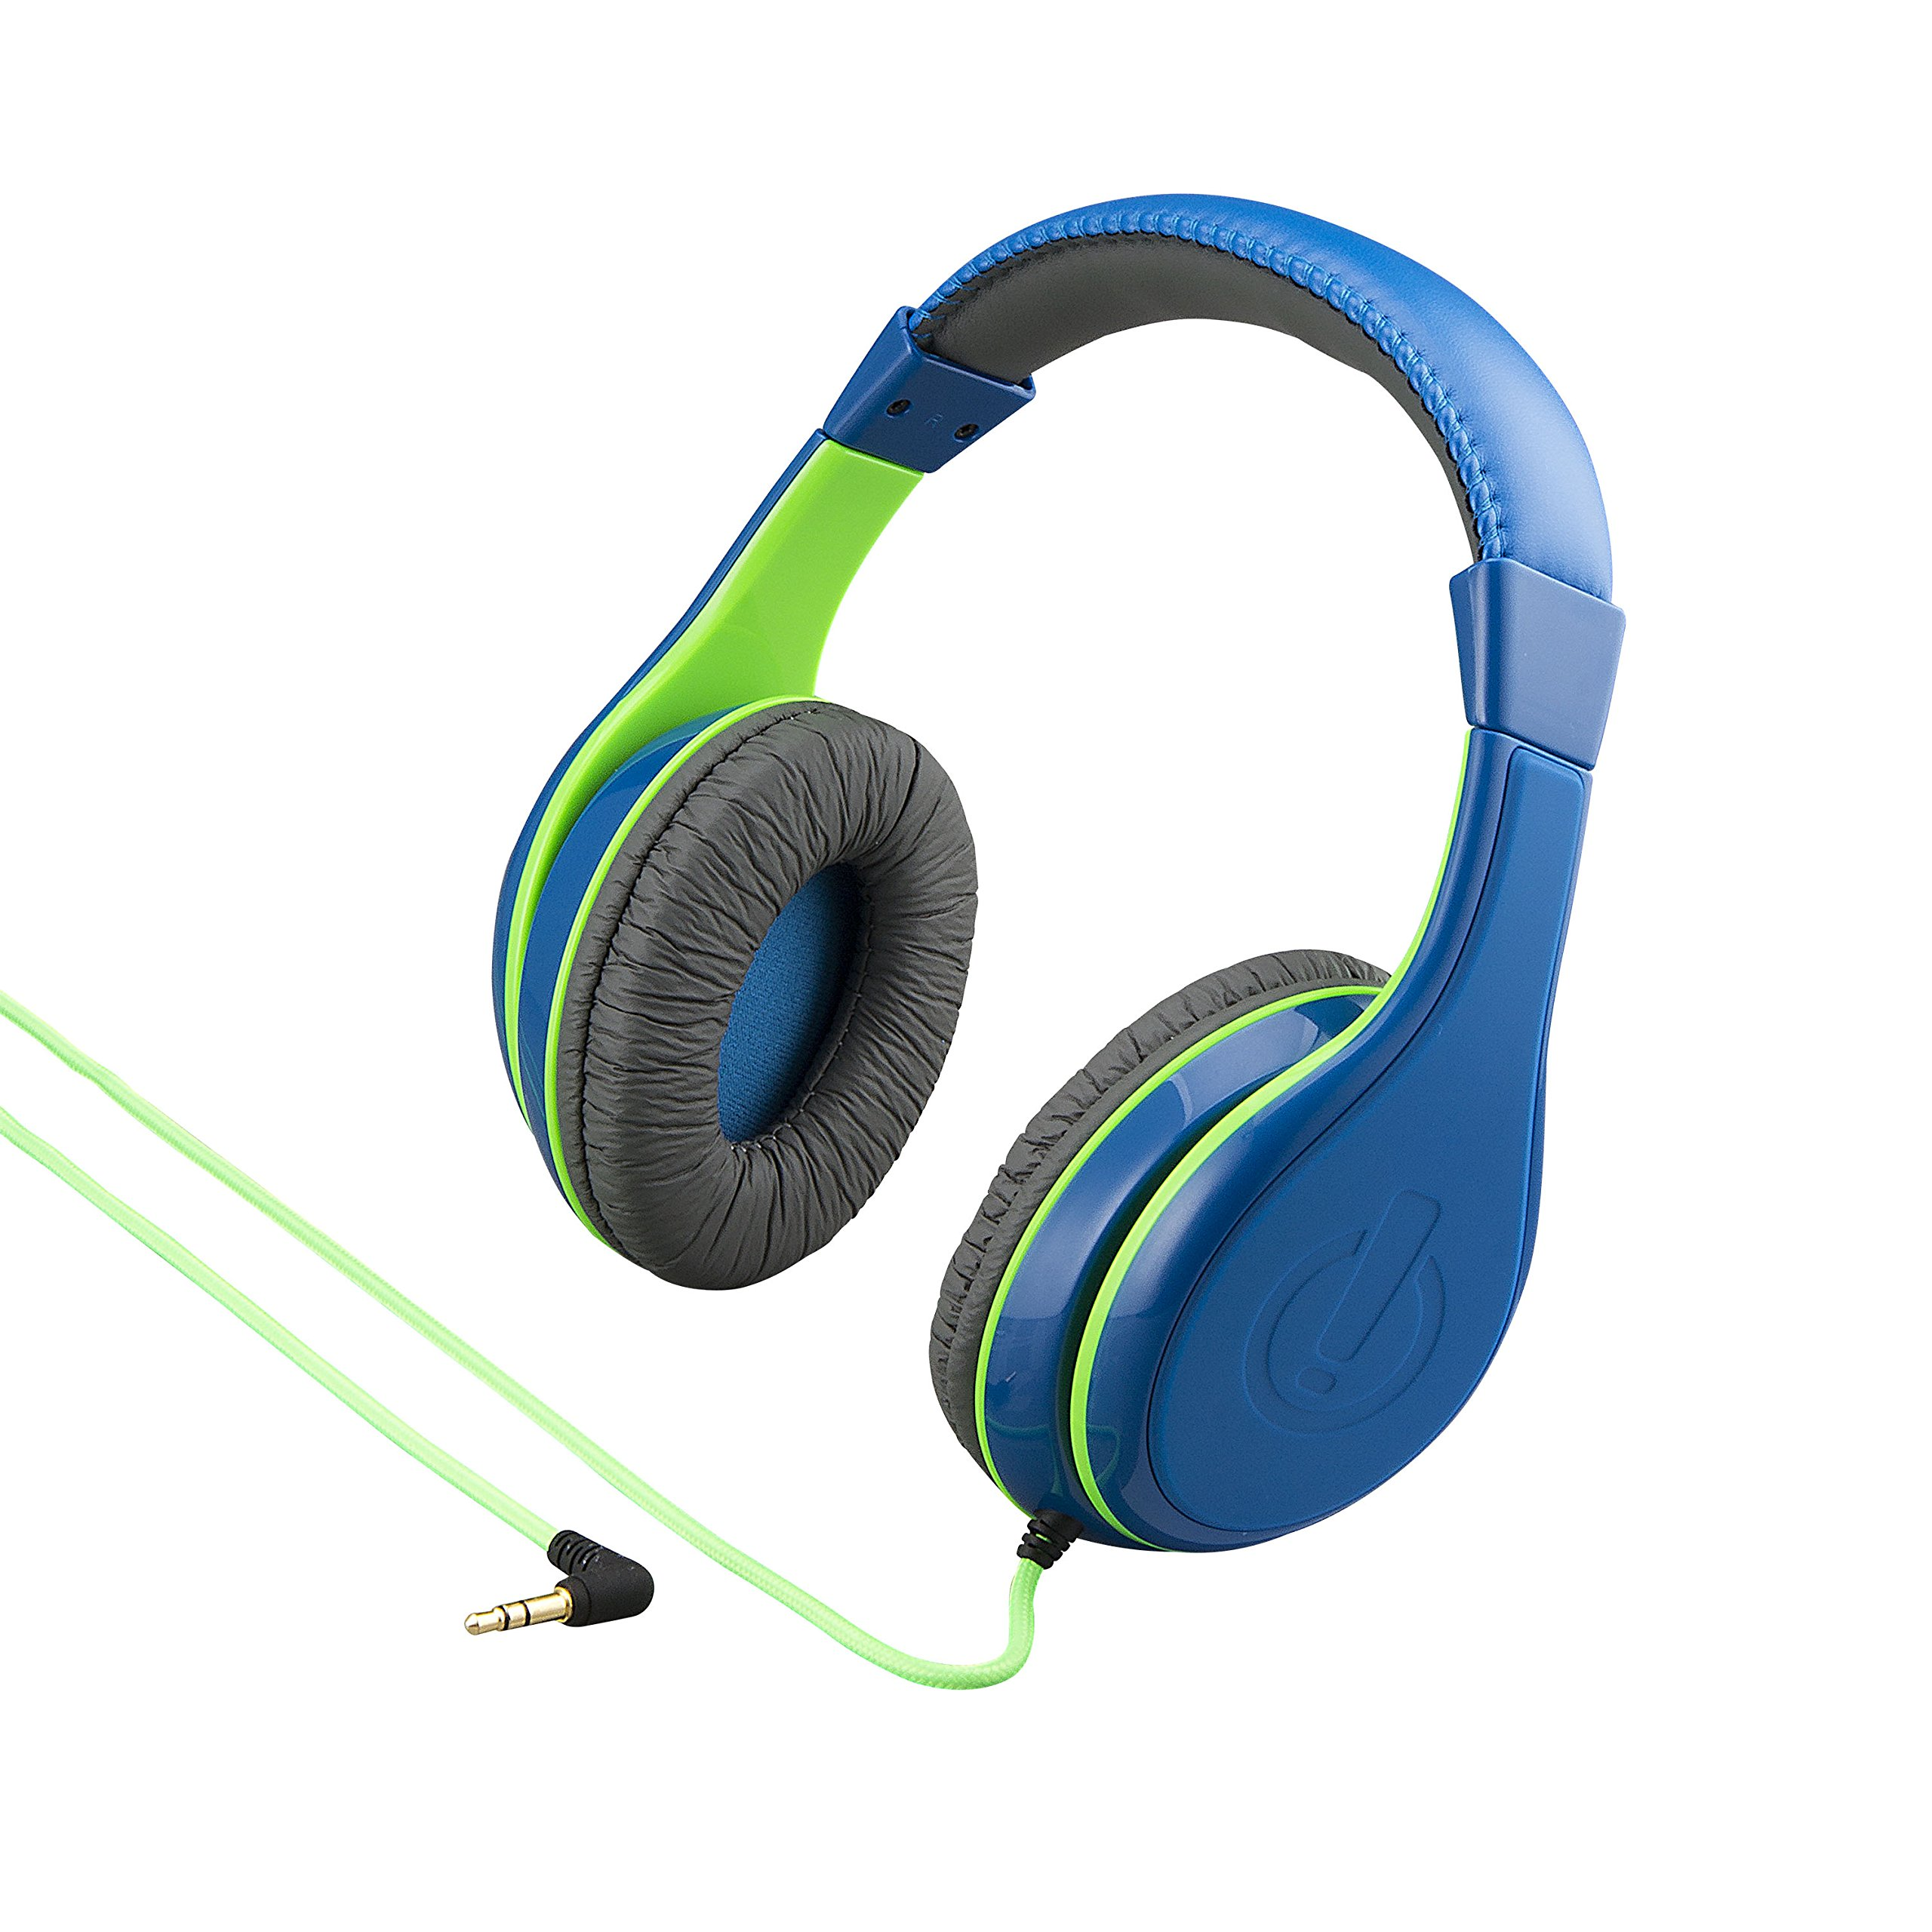 eKids New Kid Friendly Headphones Made Just for Kids with Built in Volume Limiting Feature for Safe Kid Friendly Sound (Blue)